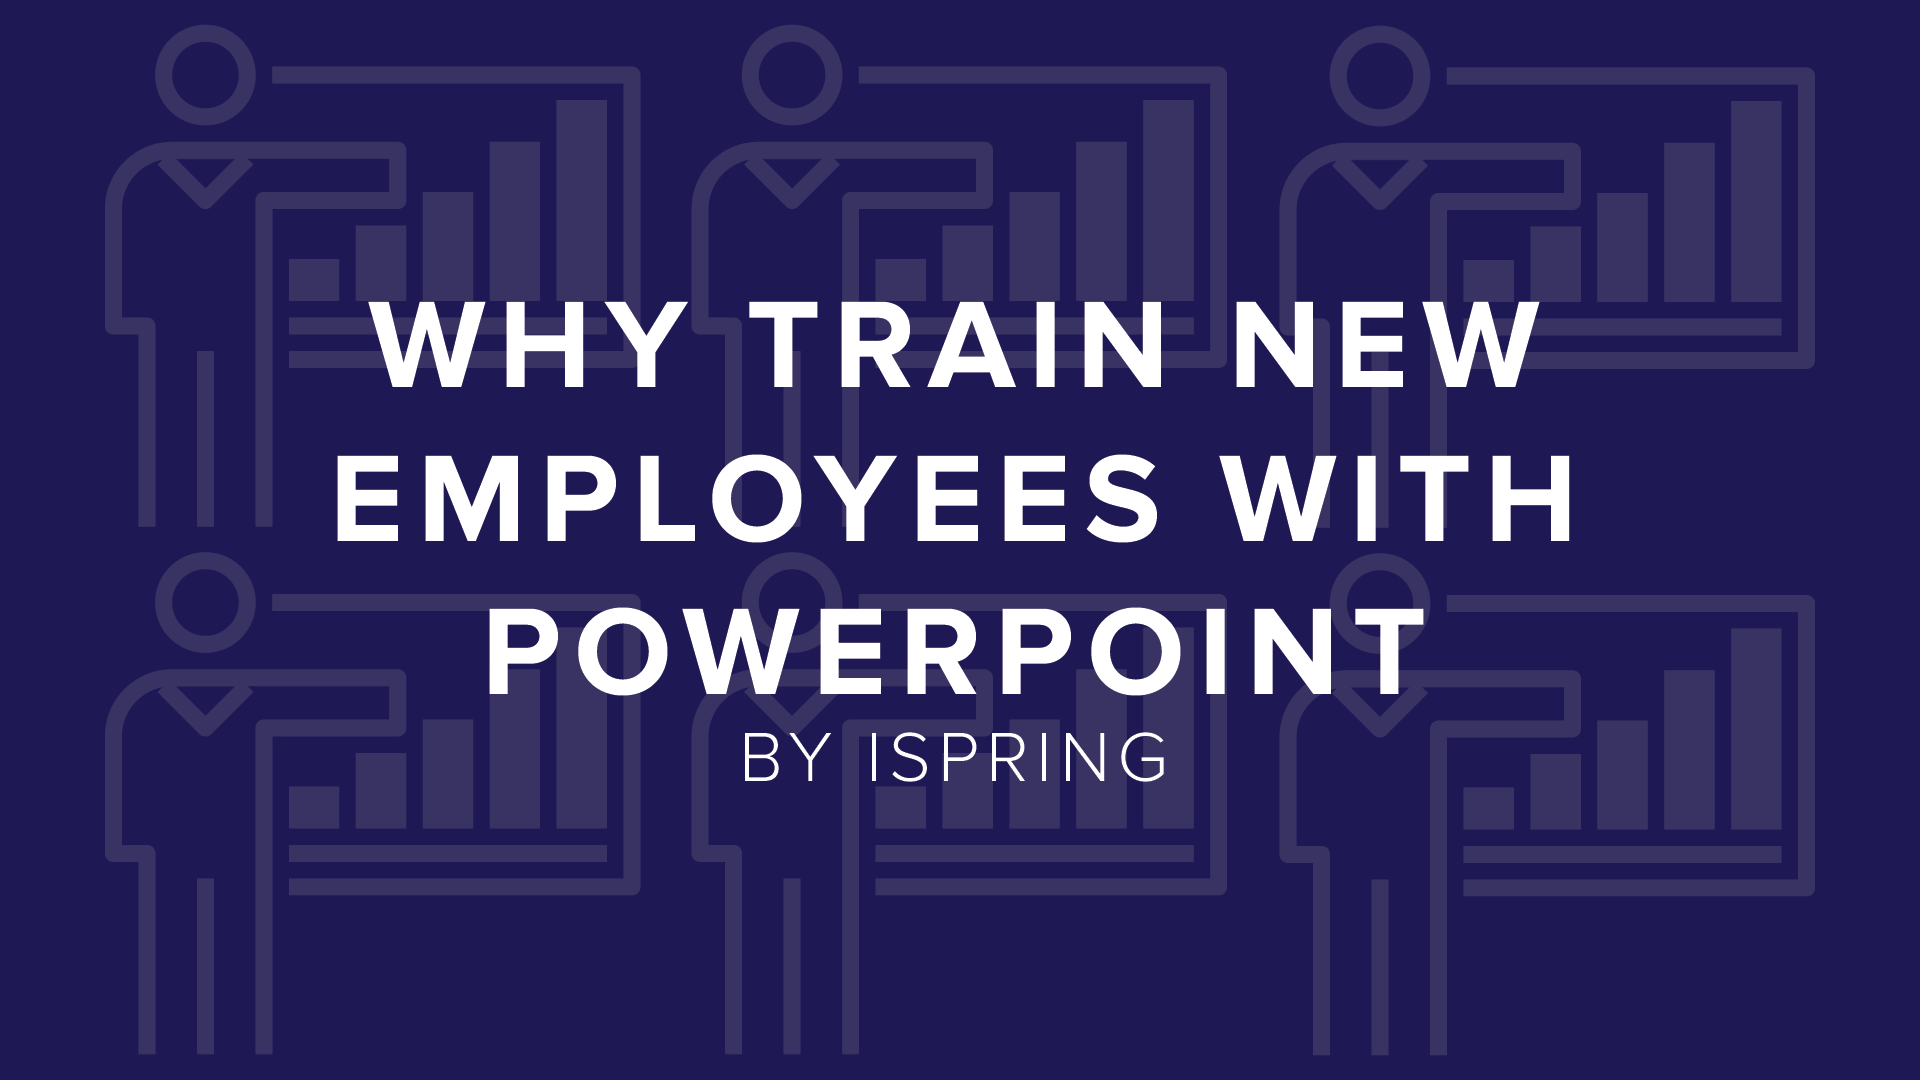 Why PowerPoint is Effective for Training New Employees | DigitalChalk Blog thumbnail